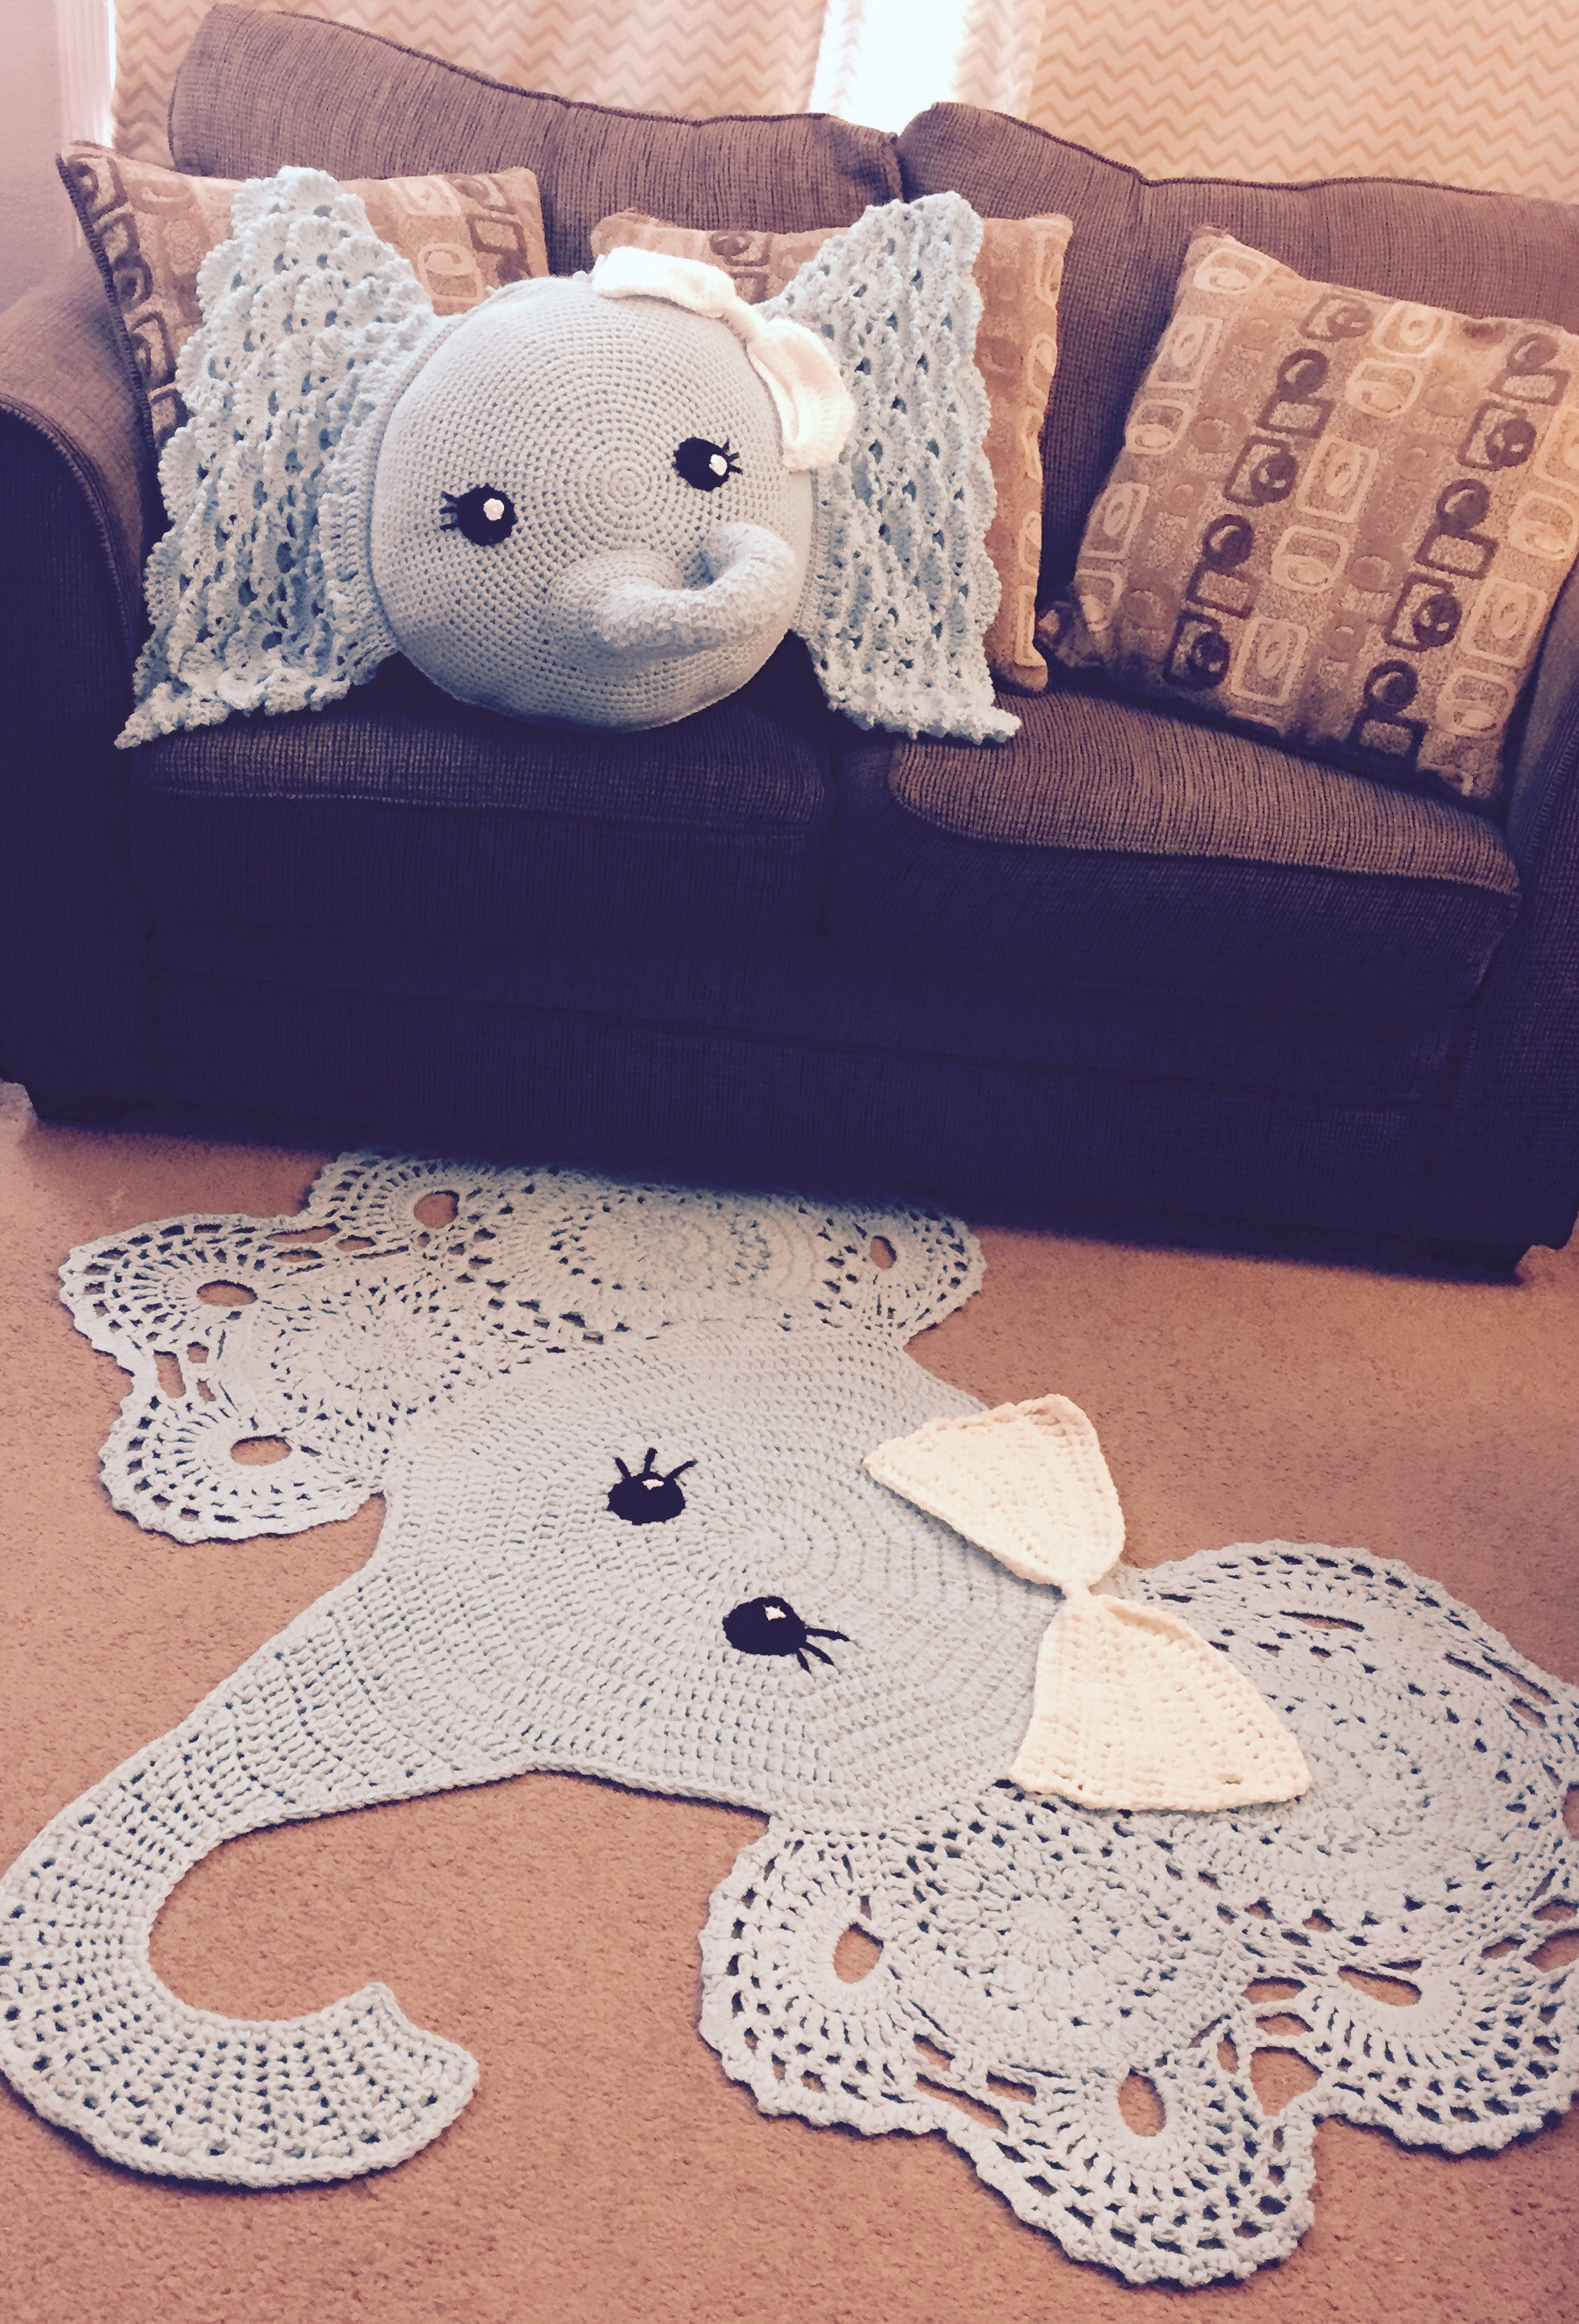 Crochet Elephant Pillow Unique Crochet Elephant Pillow and Rug Pattern Review – Family Of Brilliant 43 Images Crochet Elephant Pillow